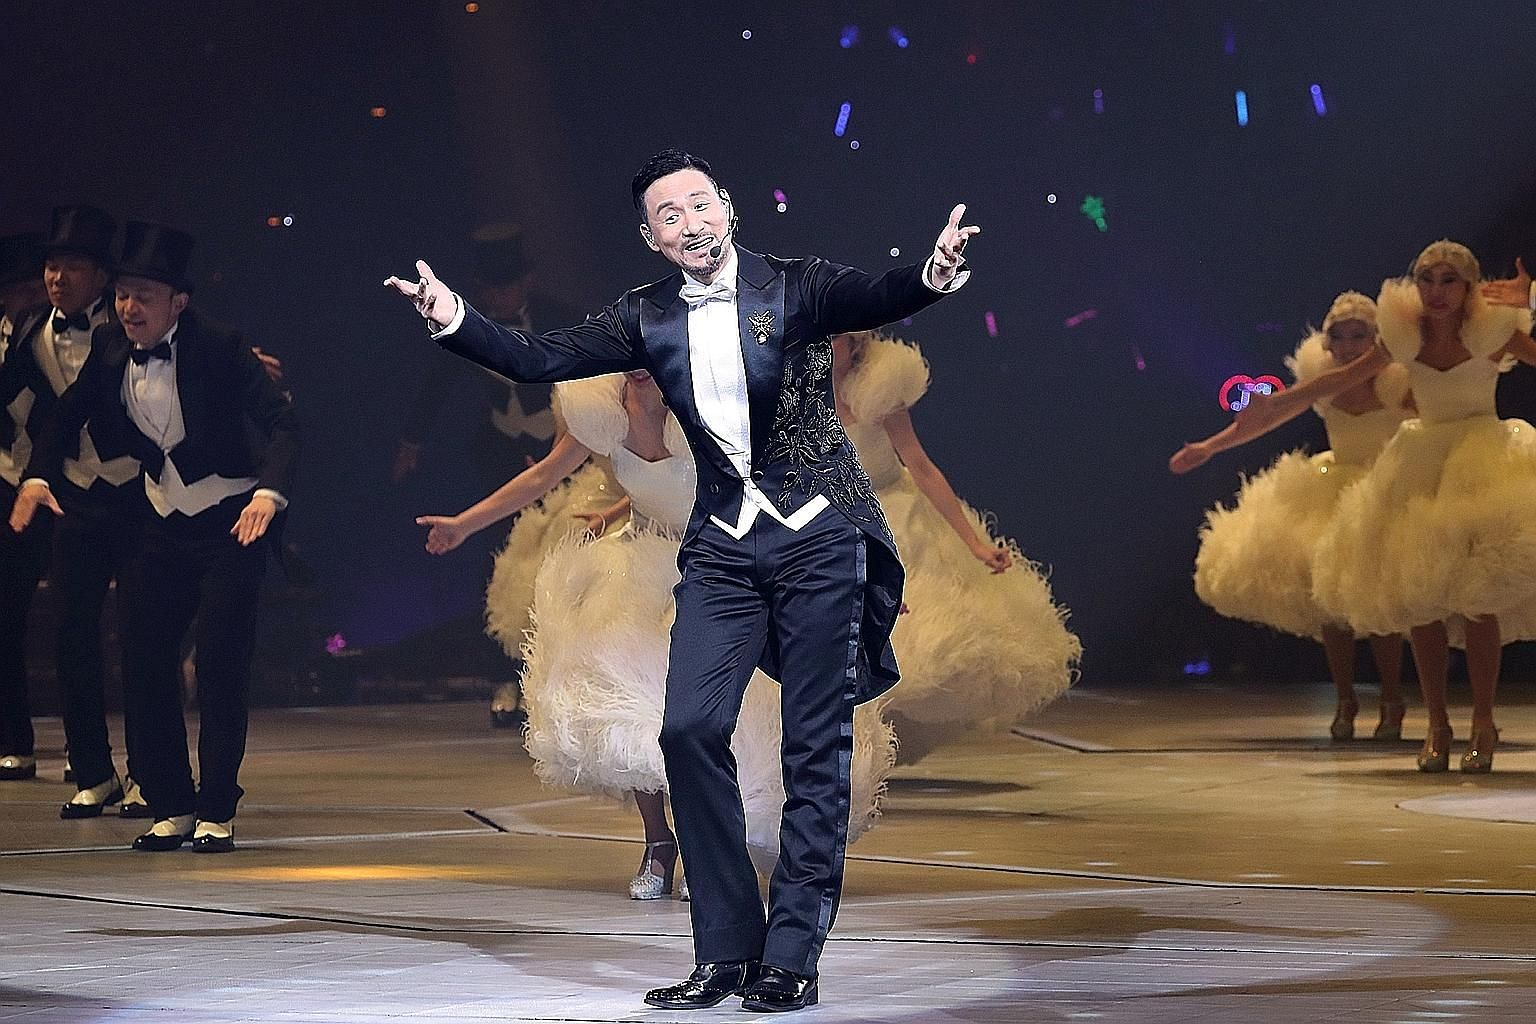 Entertainment event firm UnUsUaL, which organised Jacky Cheung's Singapore concert in February, was one of five IPOs this year. It started trading on April 10 and has been the most bullish, closing at 48 cents yesterday, up 140 per cent from its 20 c